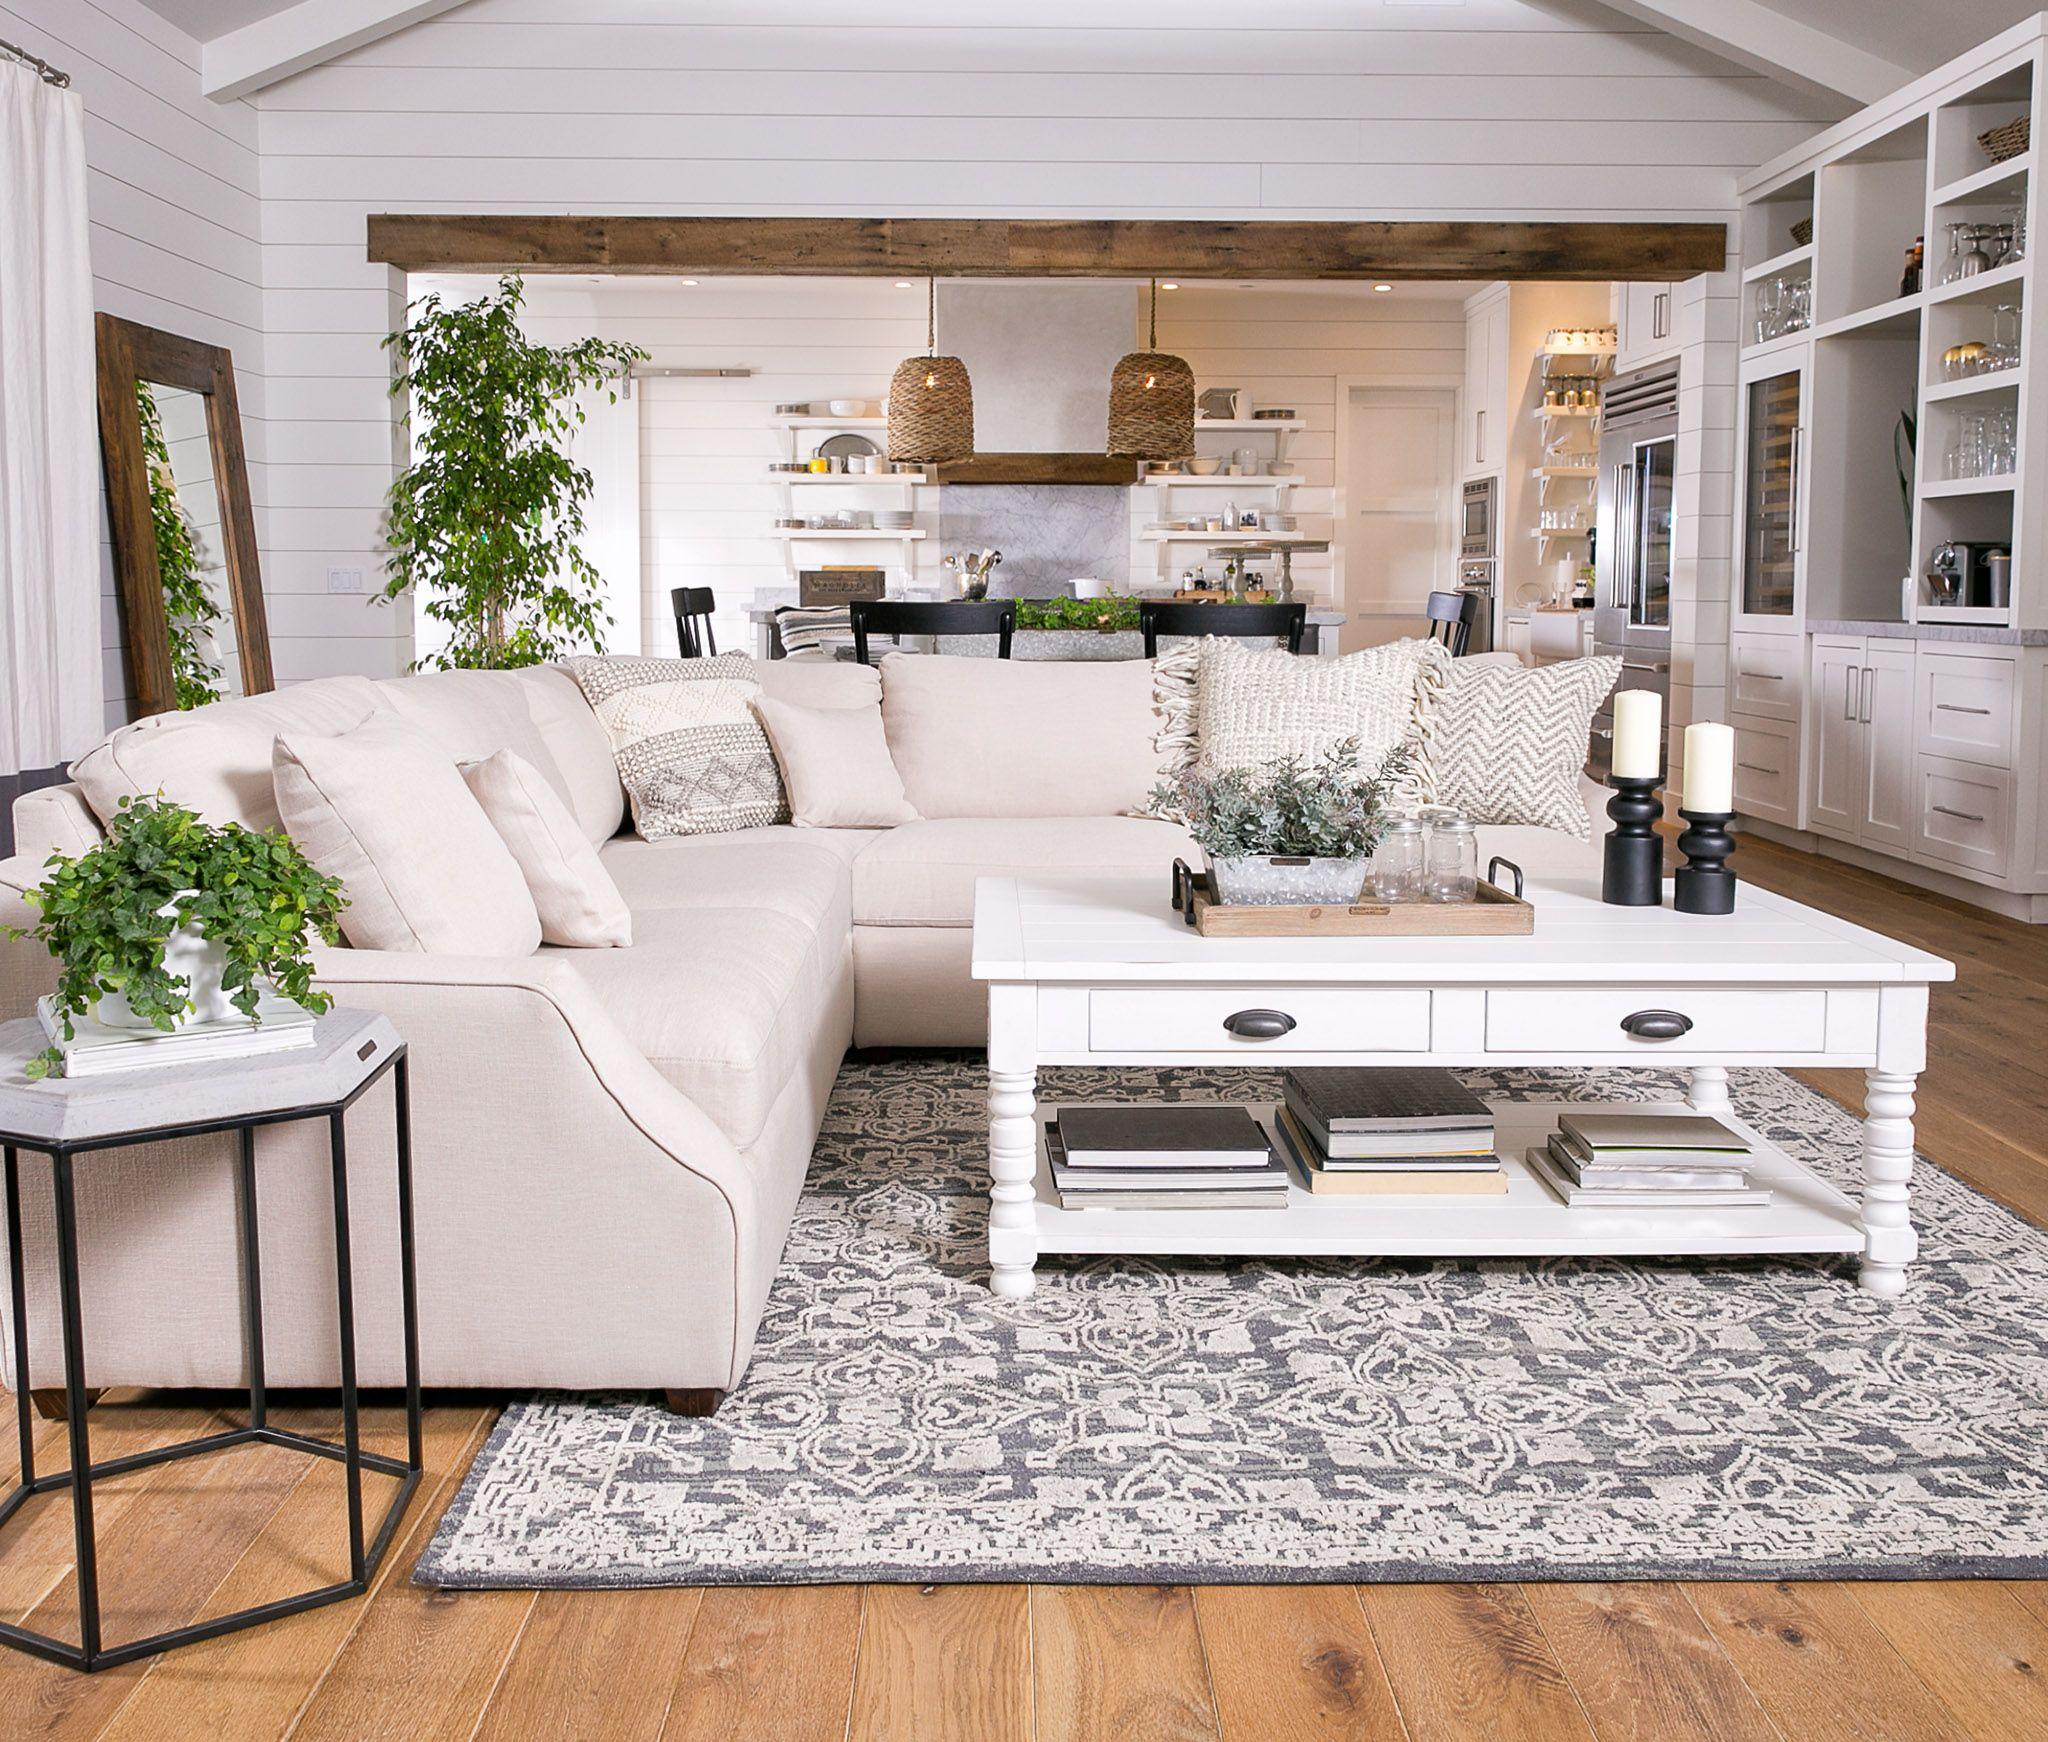 Magnolia Home Homestead 3 Piece Sectionaljoanna Gaines In 2019 With Magnolia Home Homestead Sofa Chairs By Joanna Gaines (View 15 of 25)